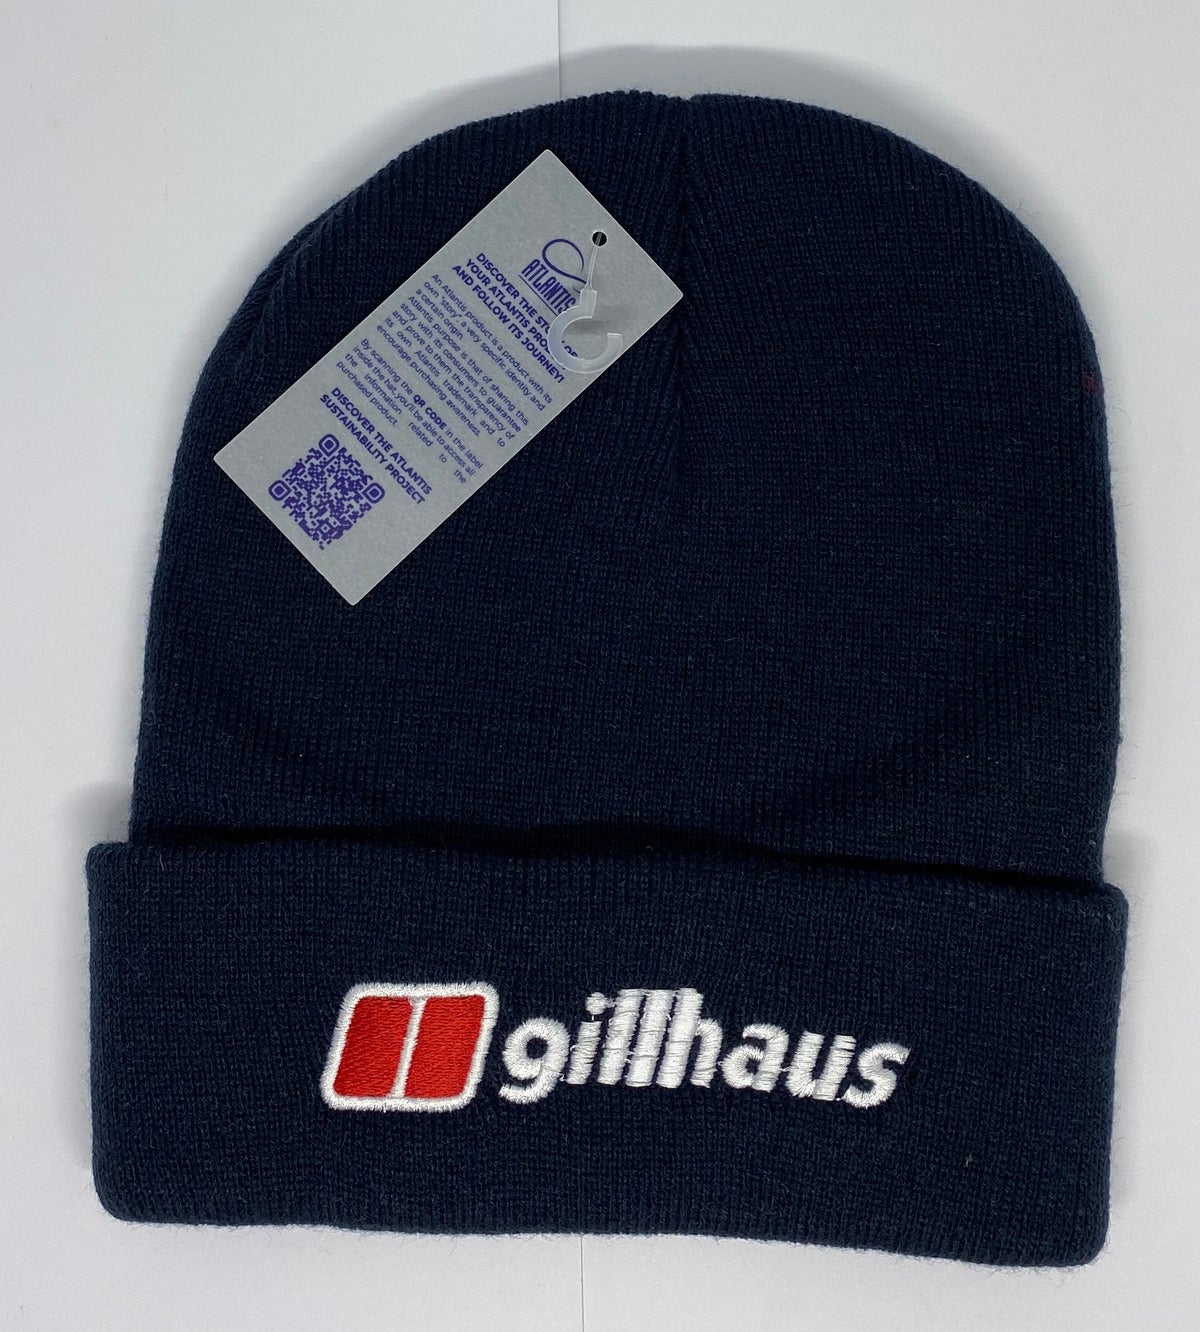 Image of Gillhaus beanie